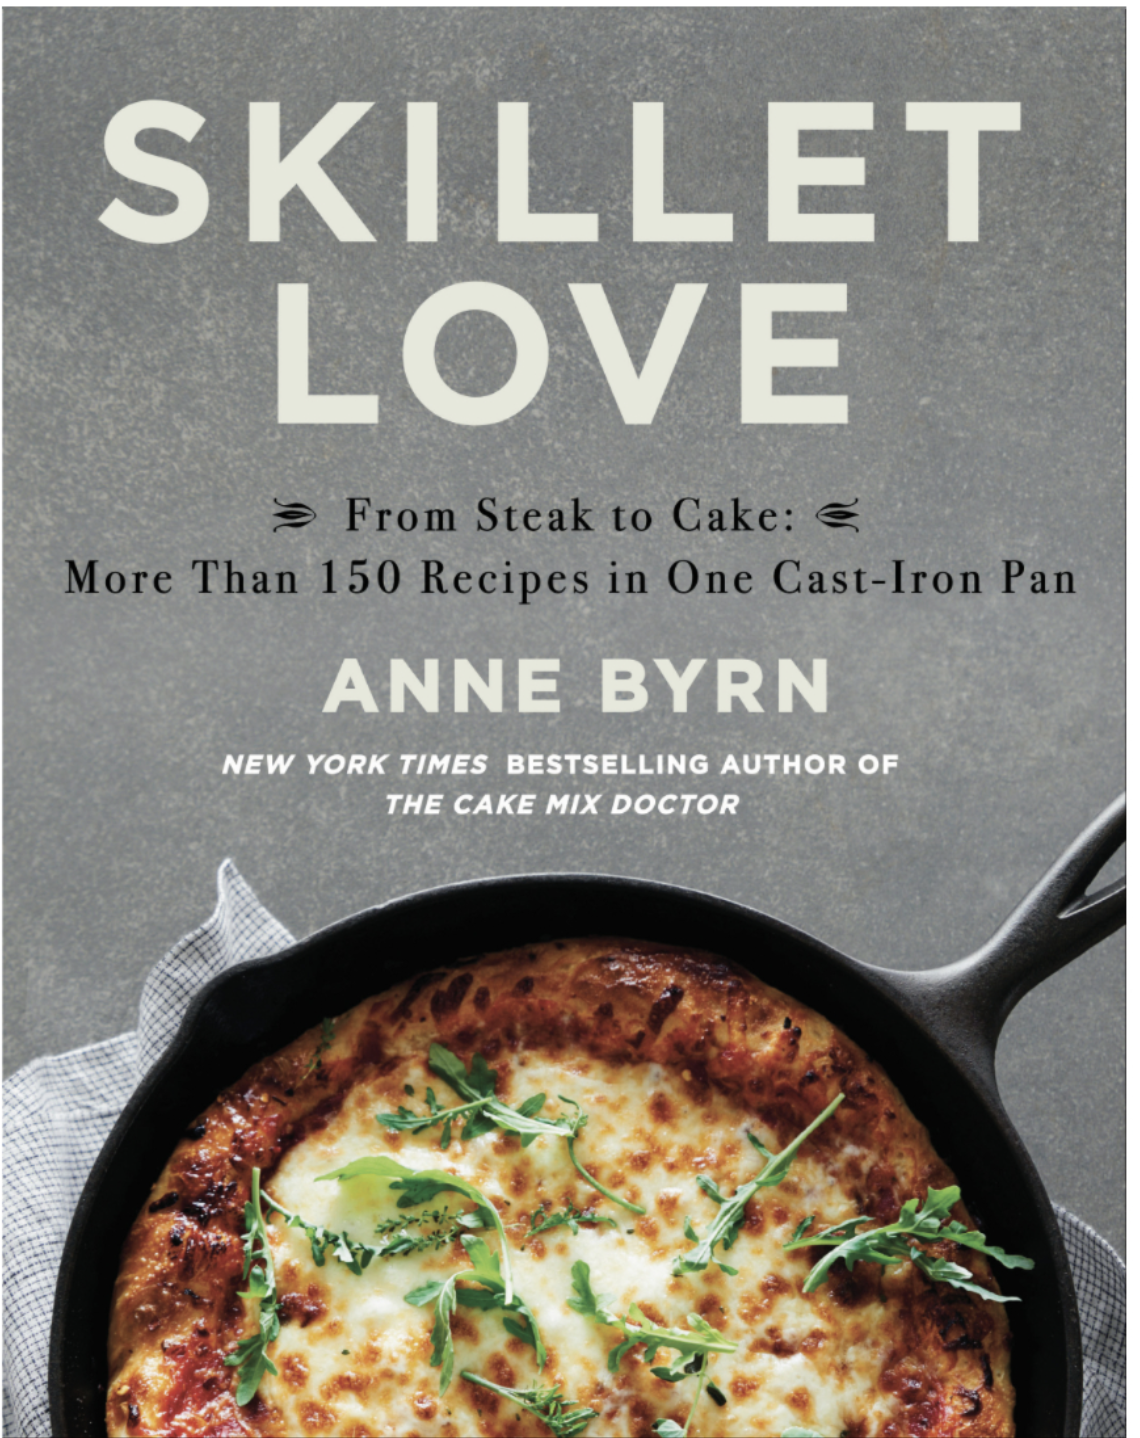 Skillet Love, Author Anne Byrn